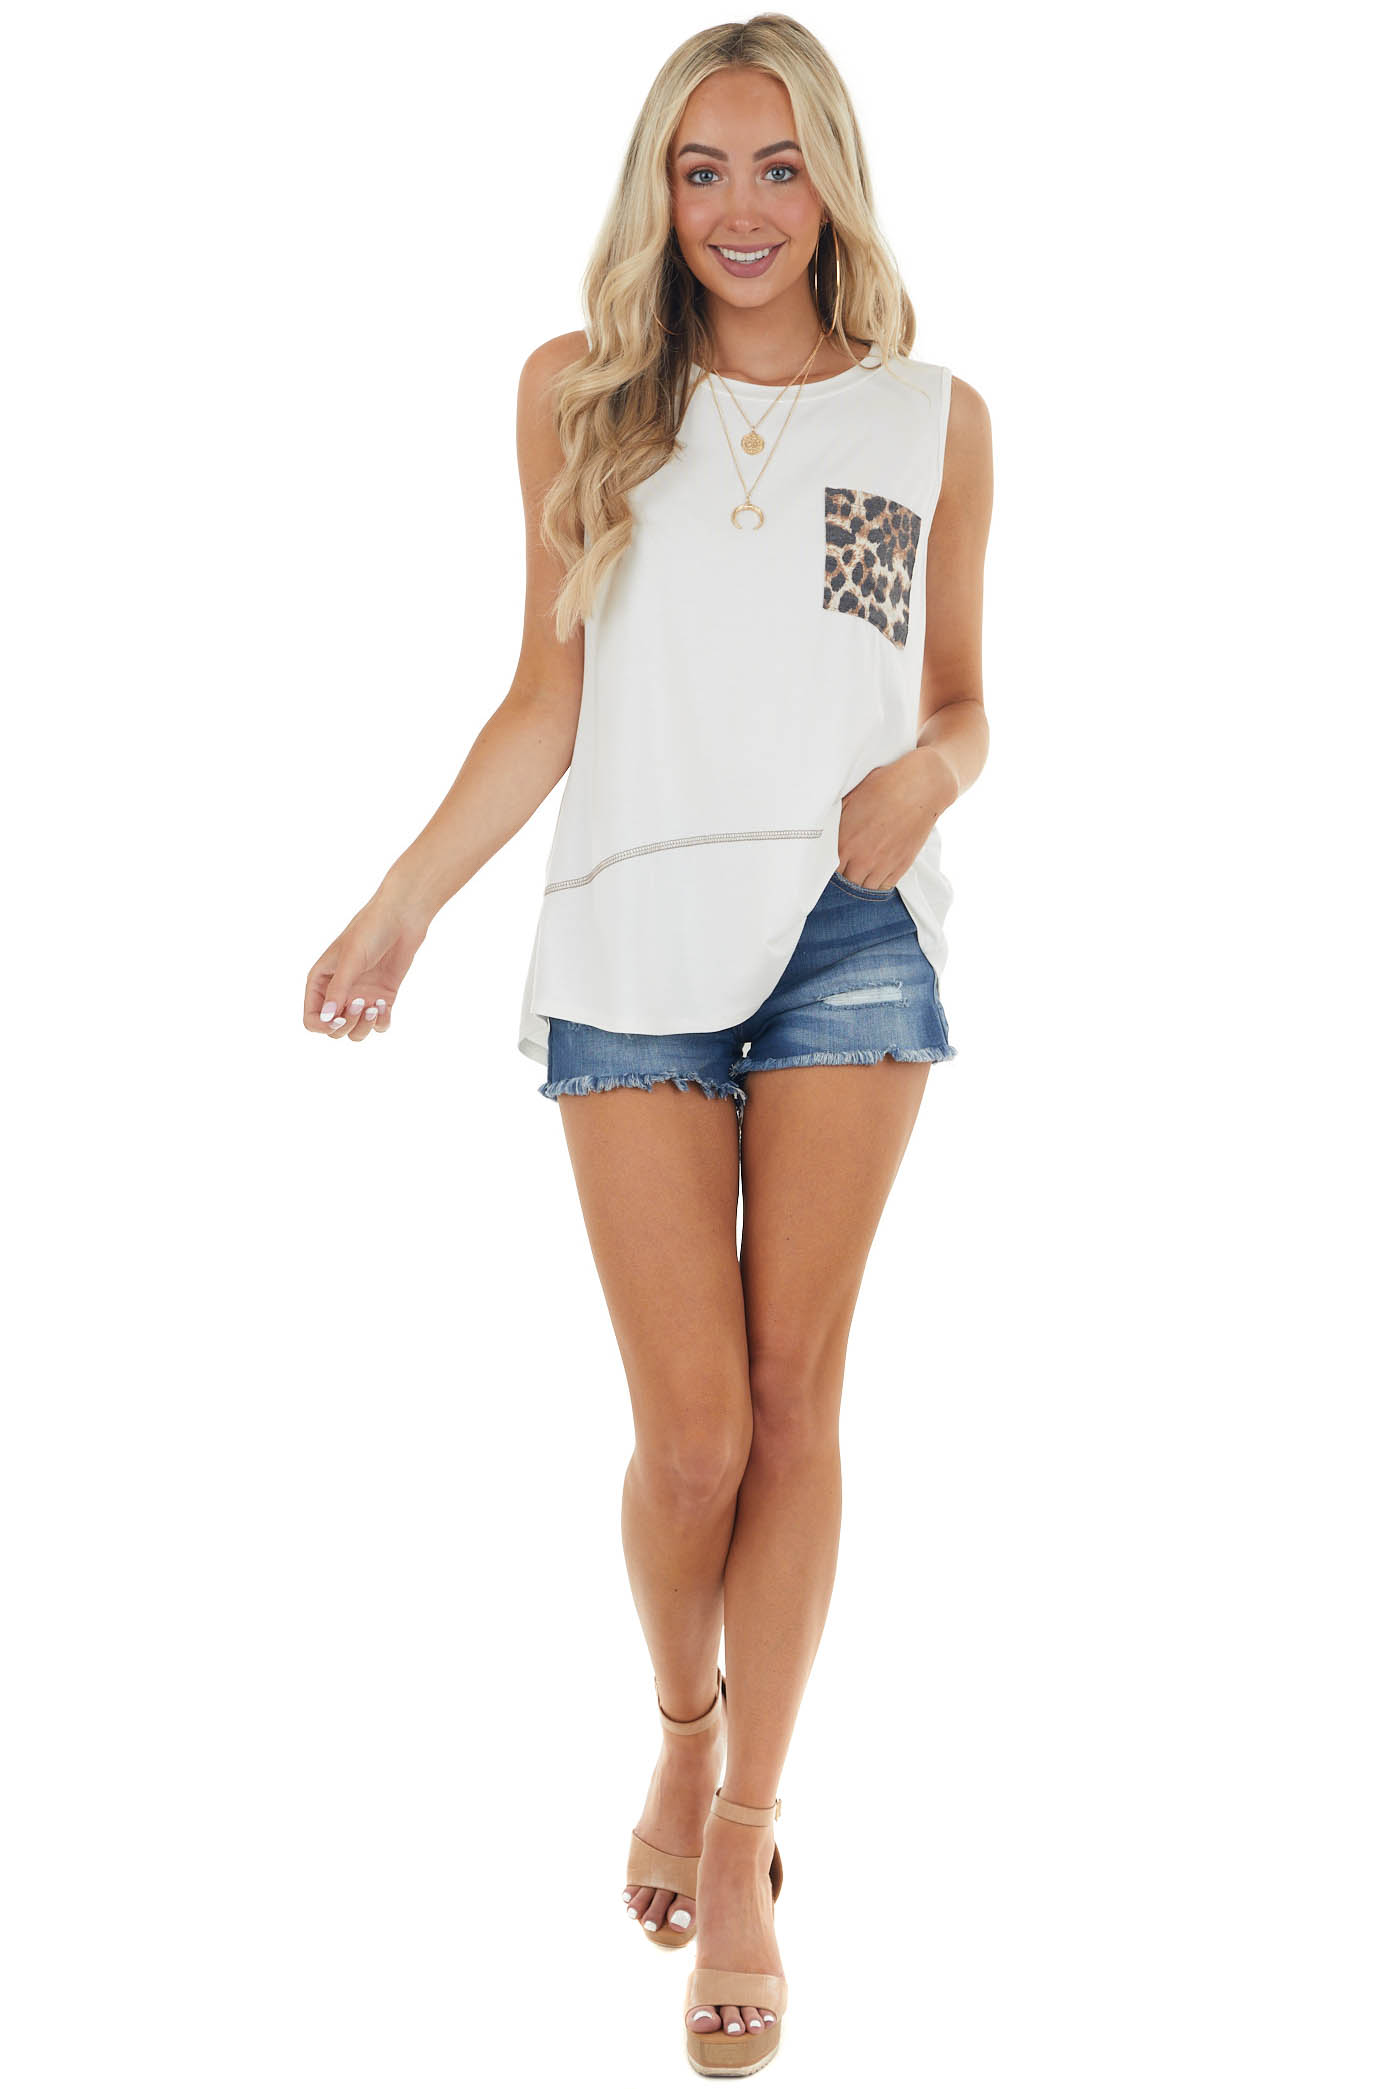 Ivory Sleeveless Knit Top with Leopard Print Chest Pocket